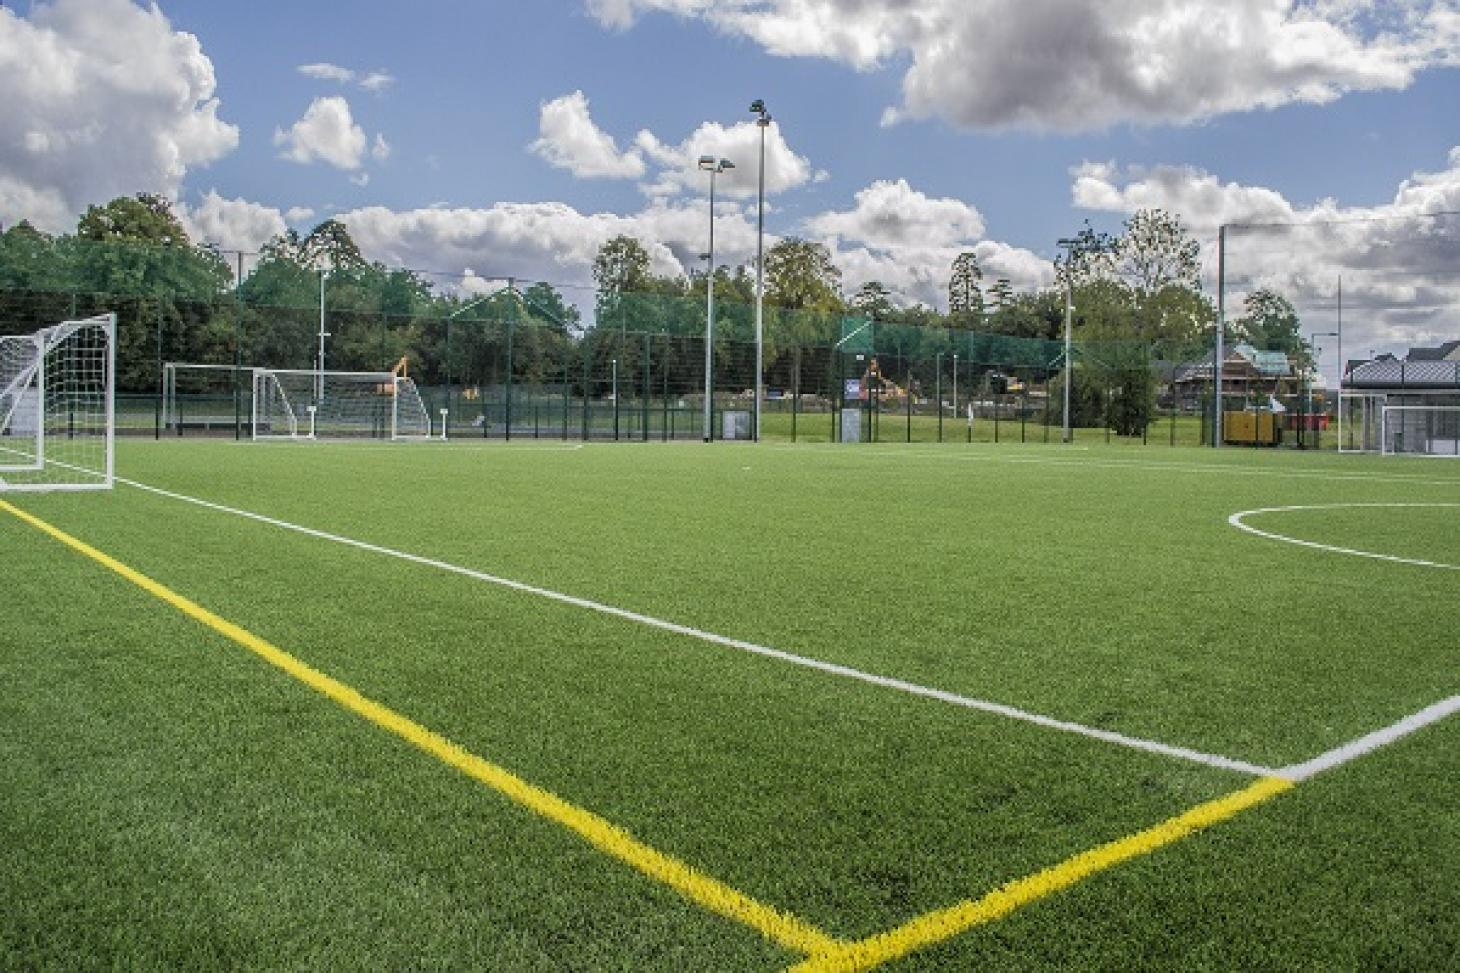 National Sports Campus 11 a side | 3G Astroturf football pitch